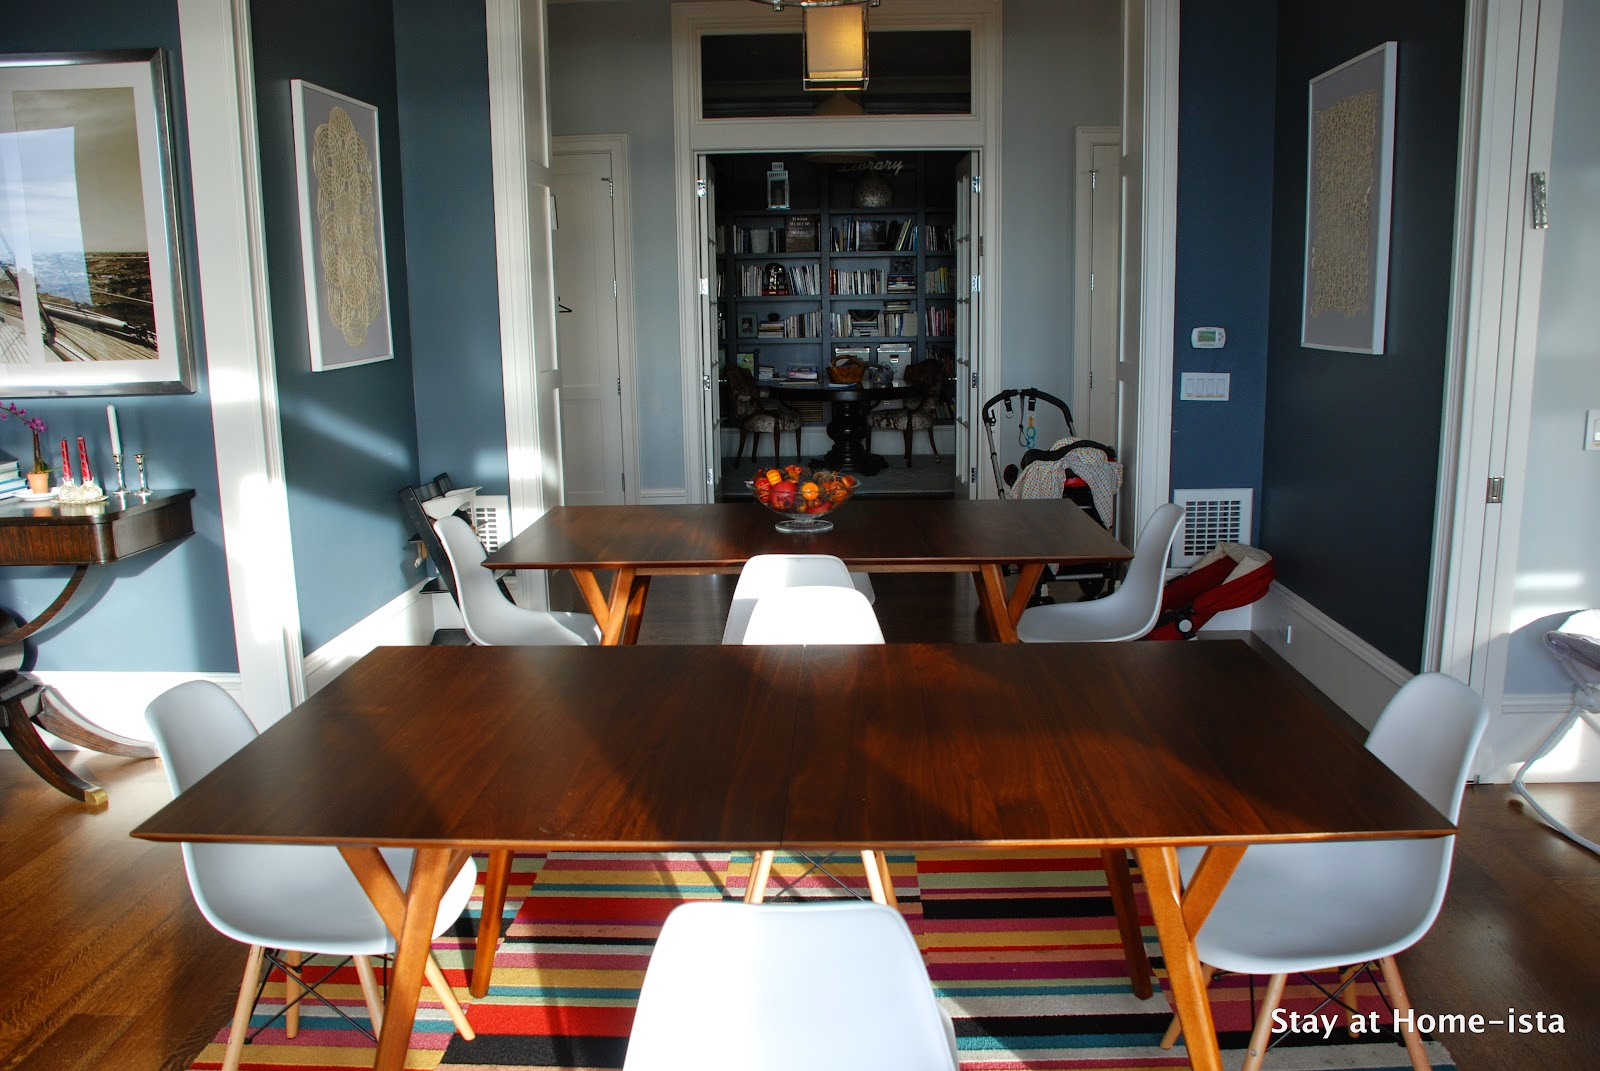 Stay At Home-ista: Dining Room Update- 2 Tables